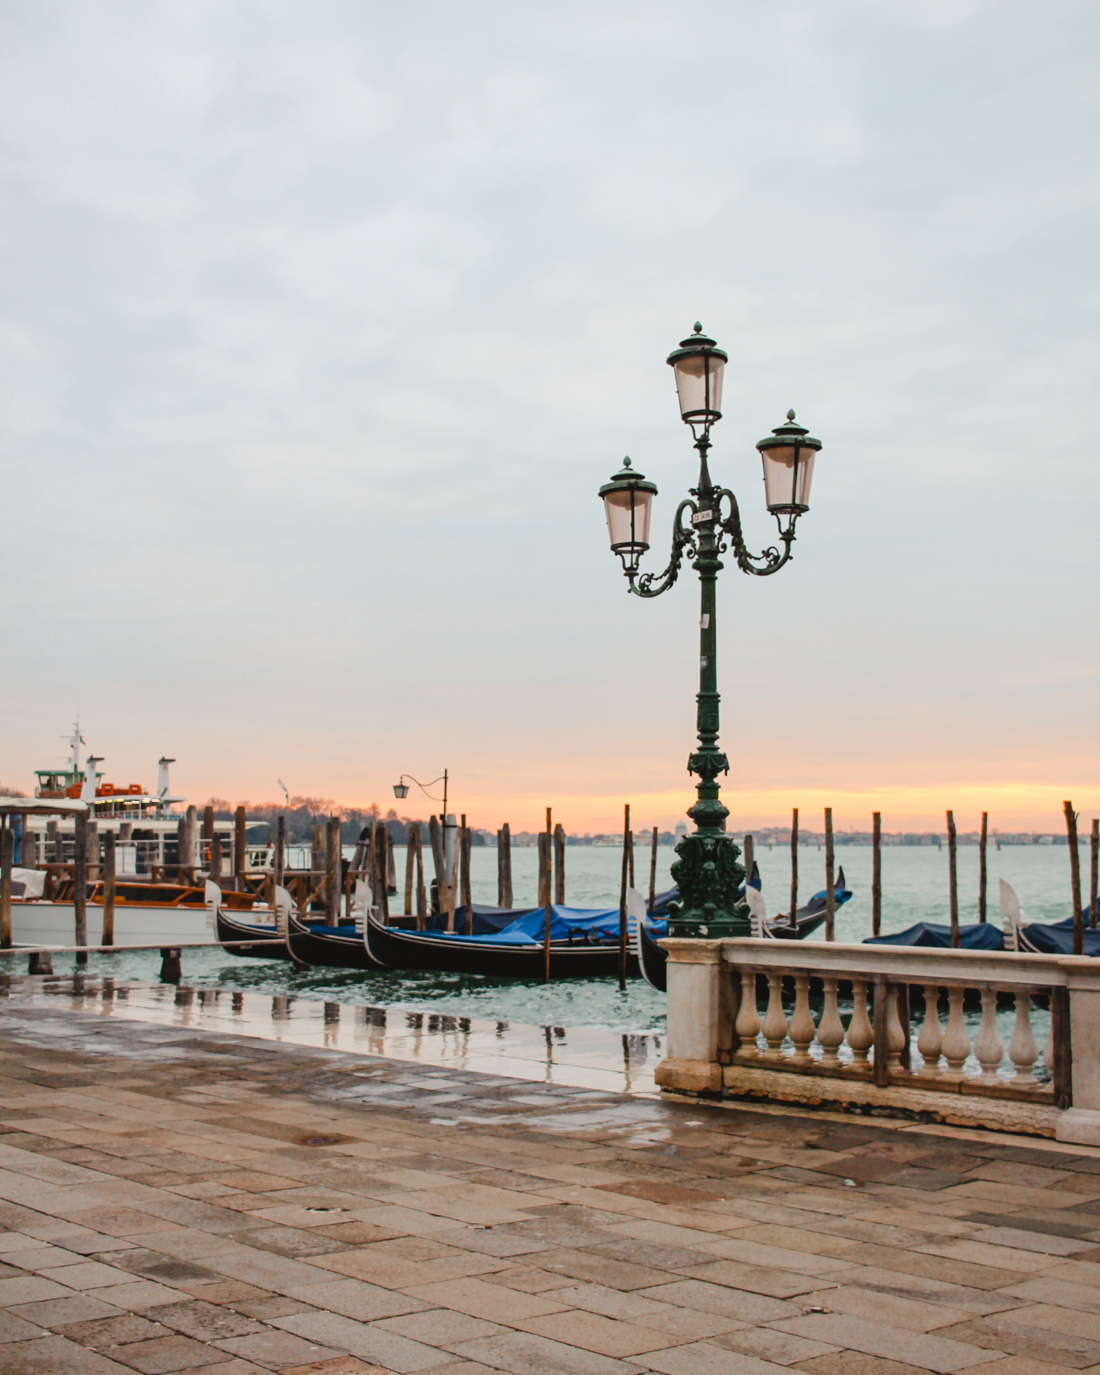 Venice in the winter